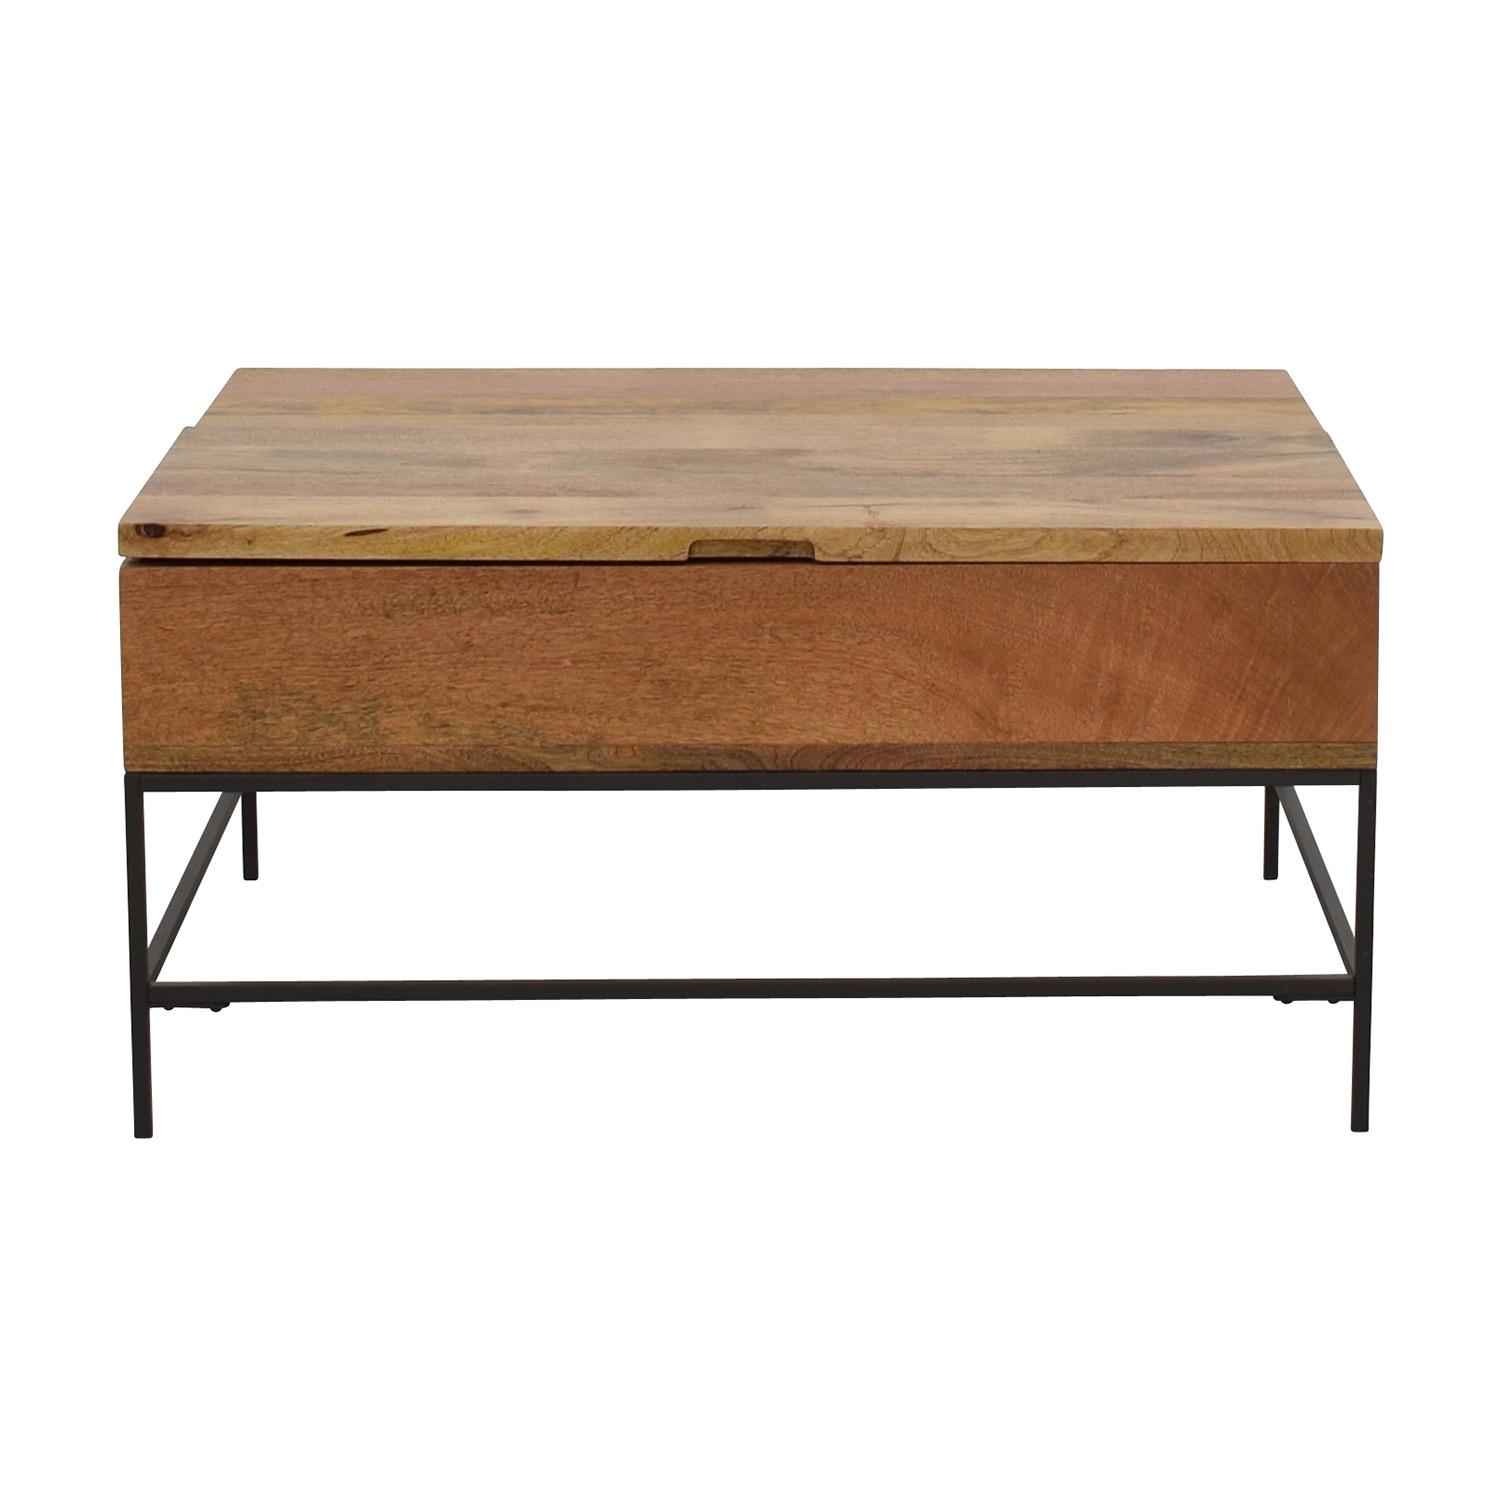 Peachy 63 Off West Elm West Elm Industrial Storage Coffee Table Tables Caraccident5 Cool Chair Designs And Ideas Caraccident5Info